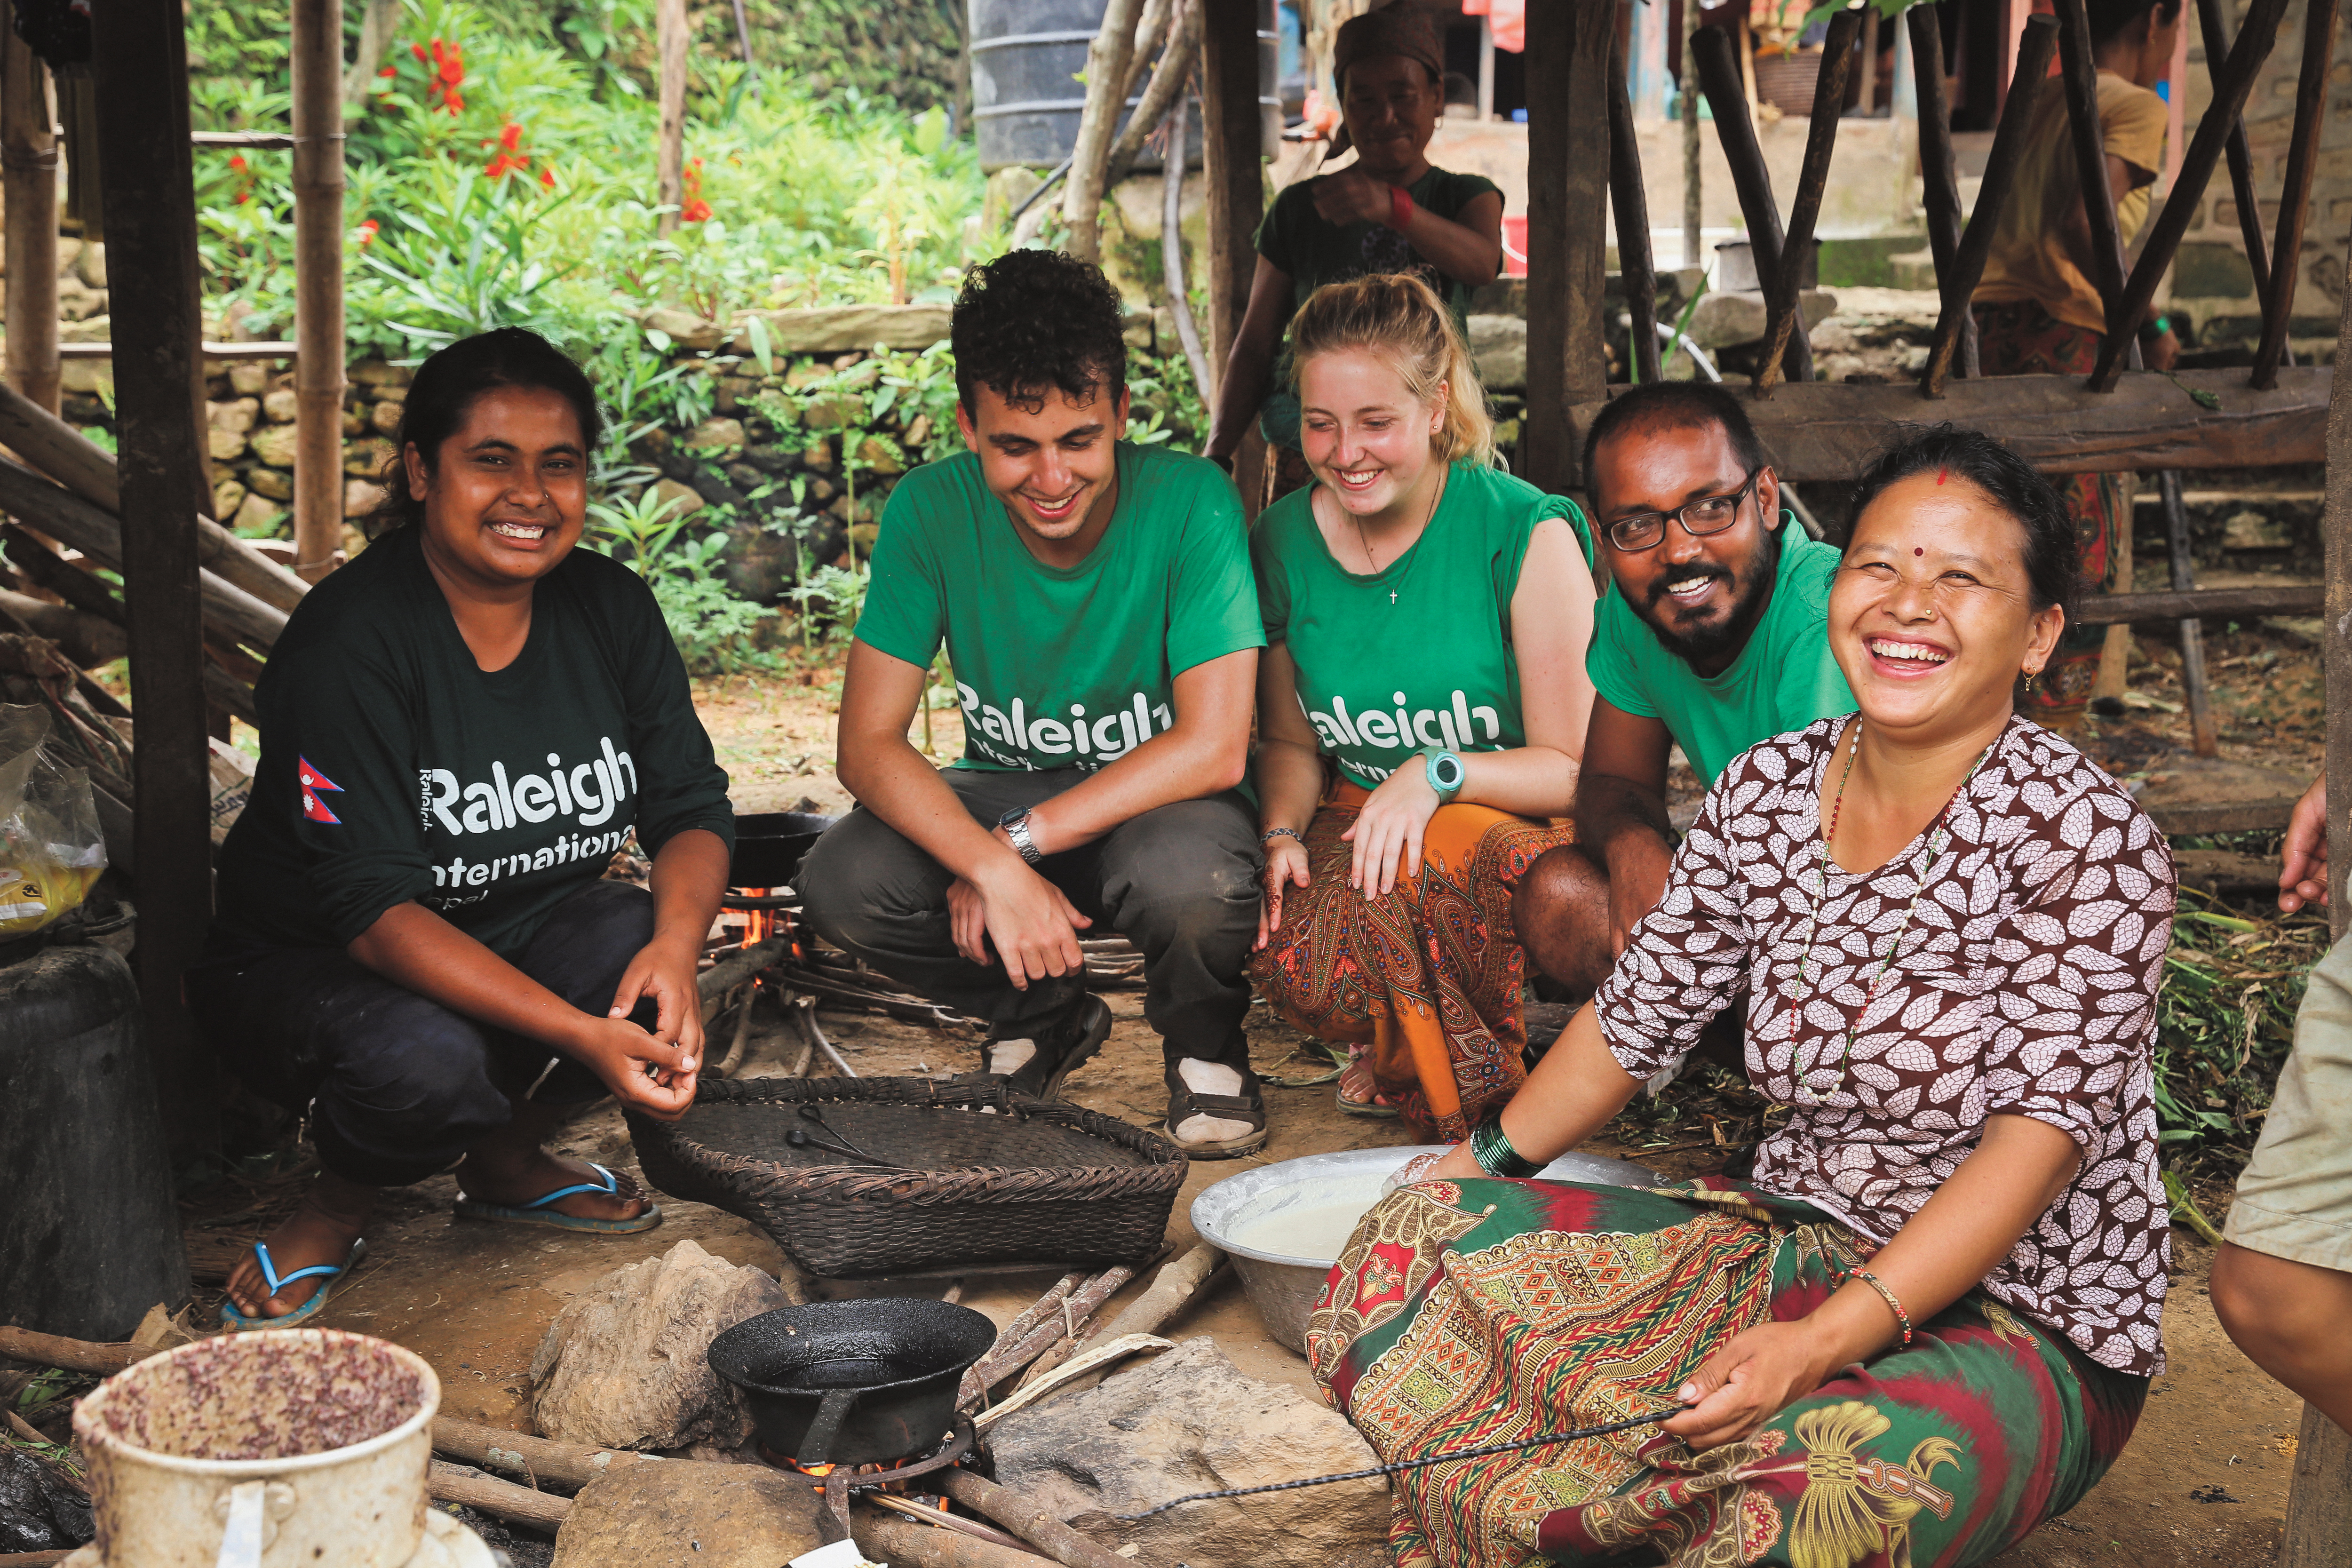 Summer Program - Preserving the Environment | Raleigh International - Summer 2020 Travel Abroad Program in Nepal